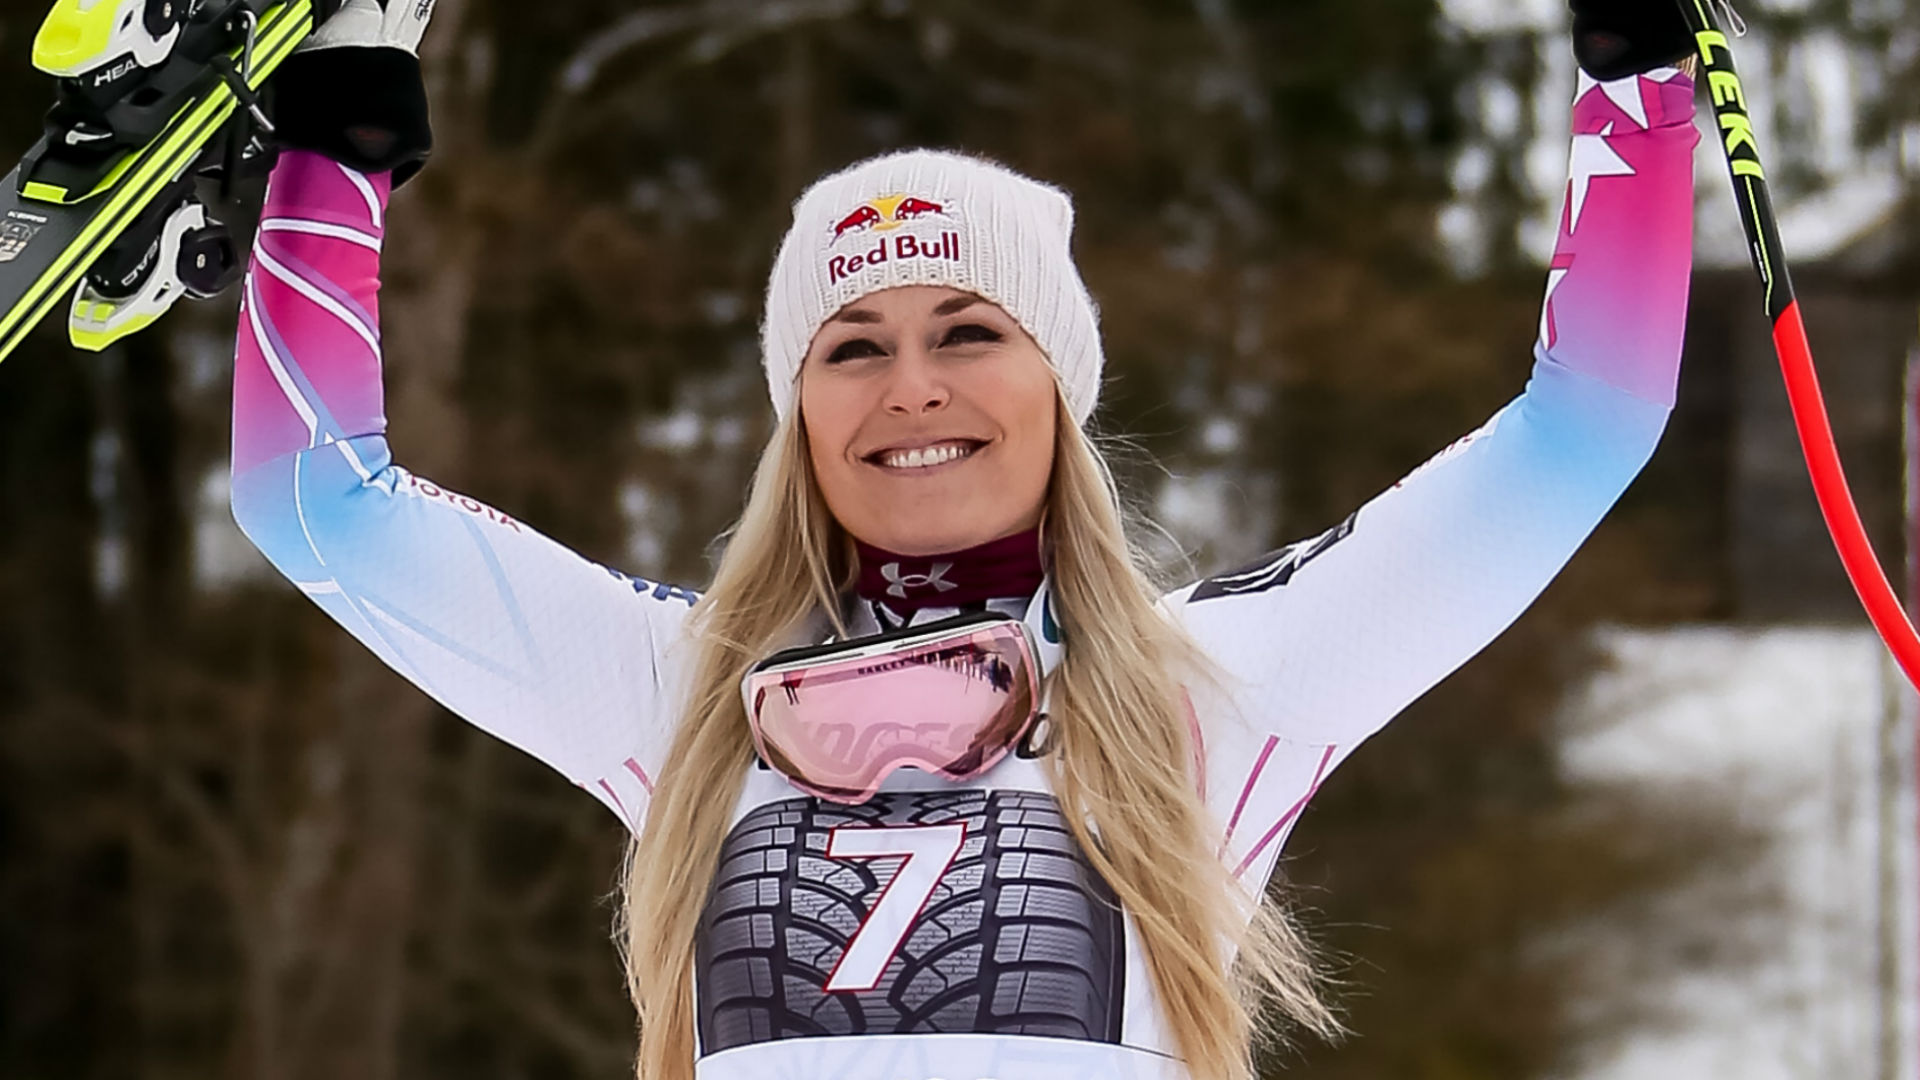 Lindsey Vonn: Lindsey Vonn At The 2018 Winter Olympics: How To Watch